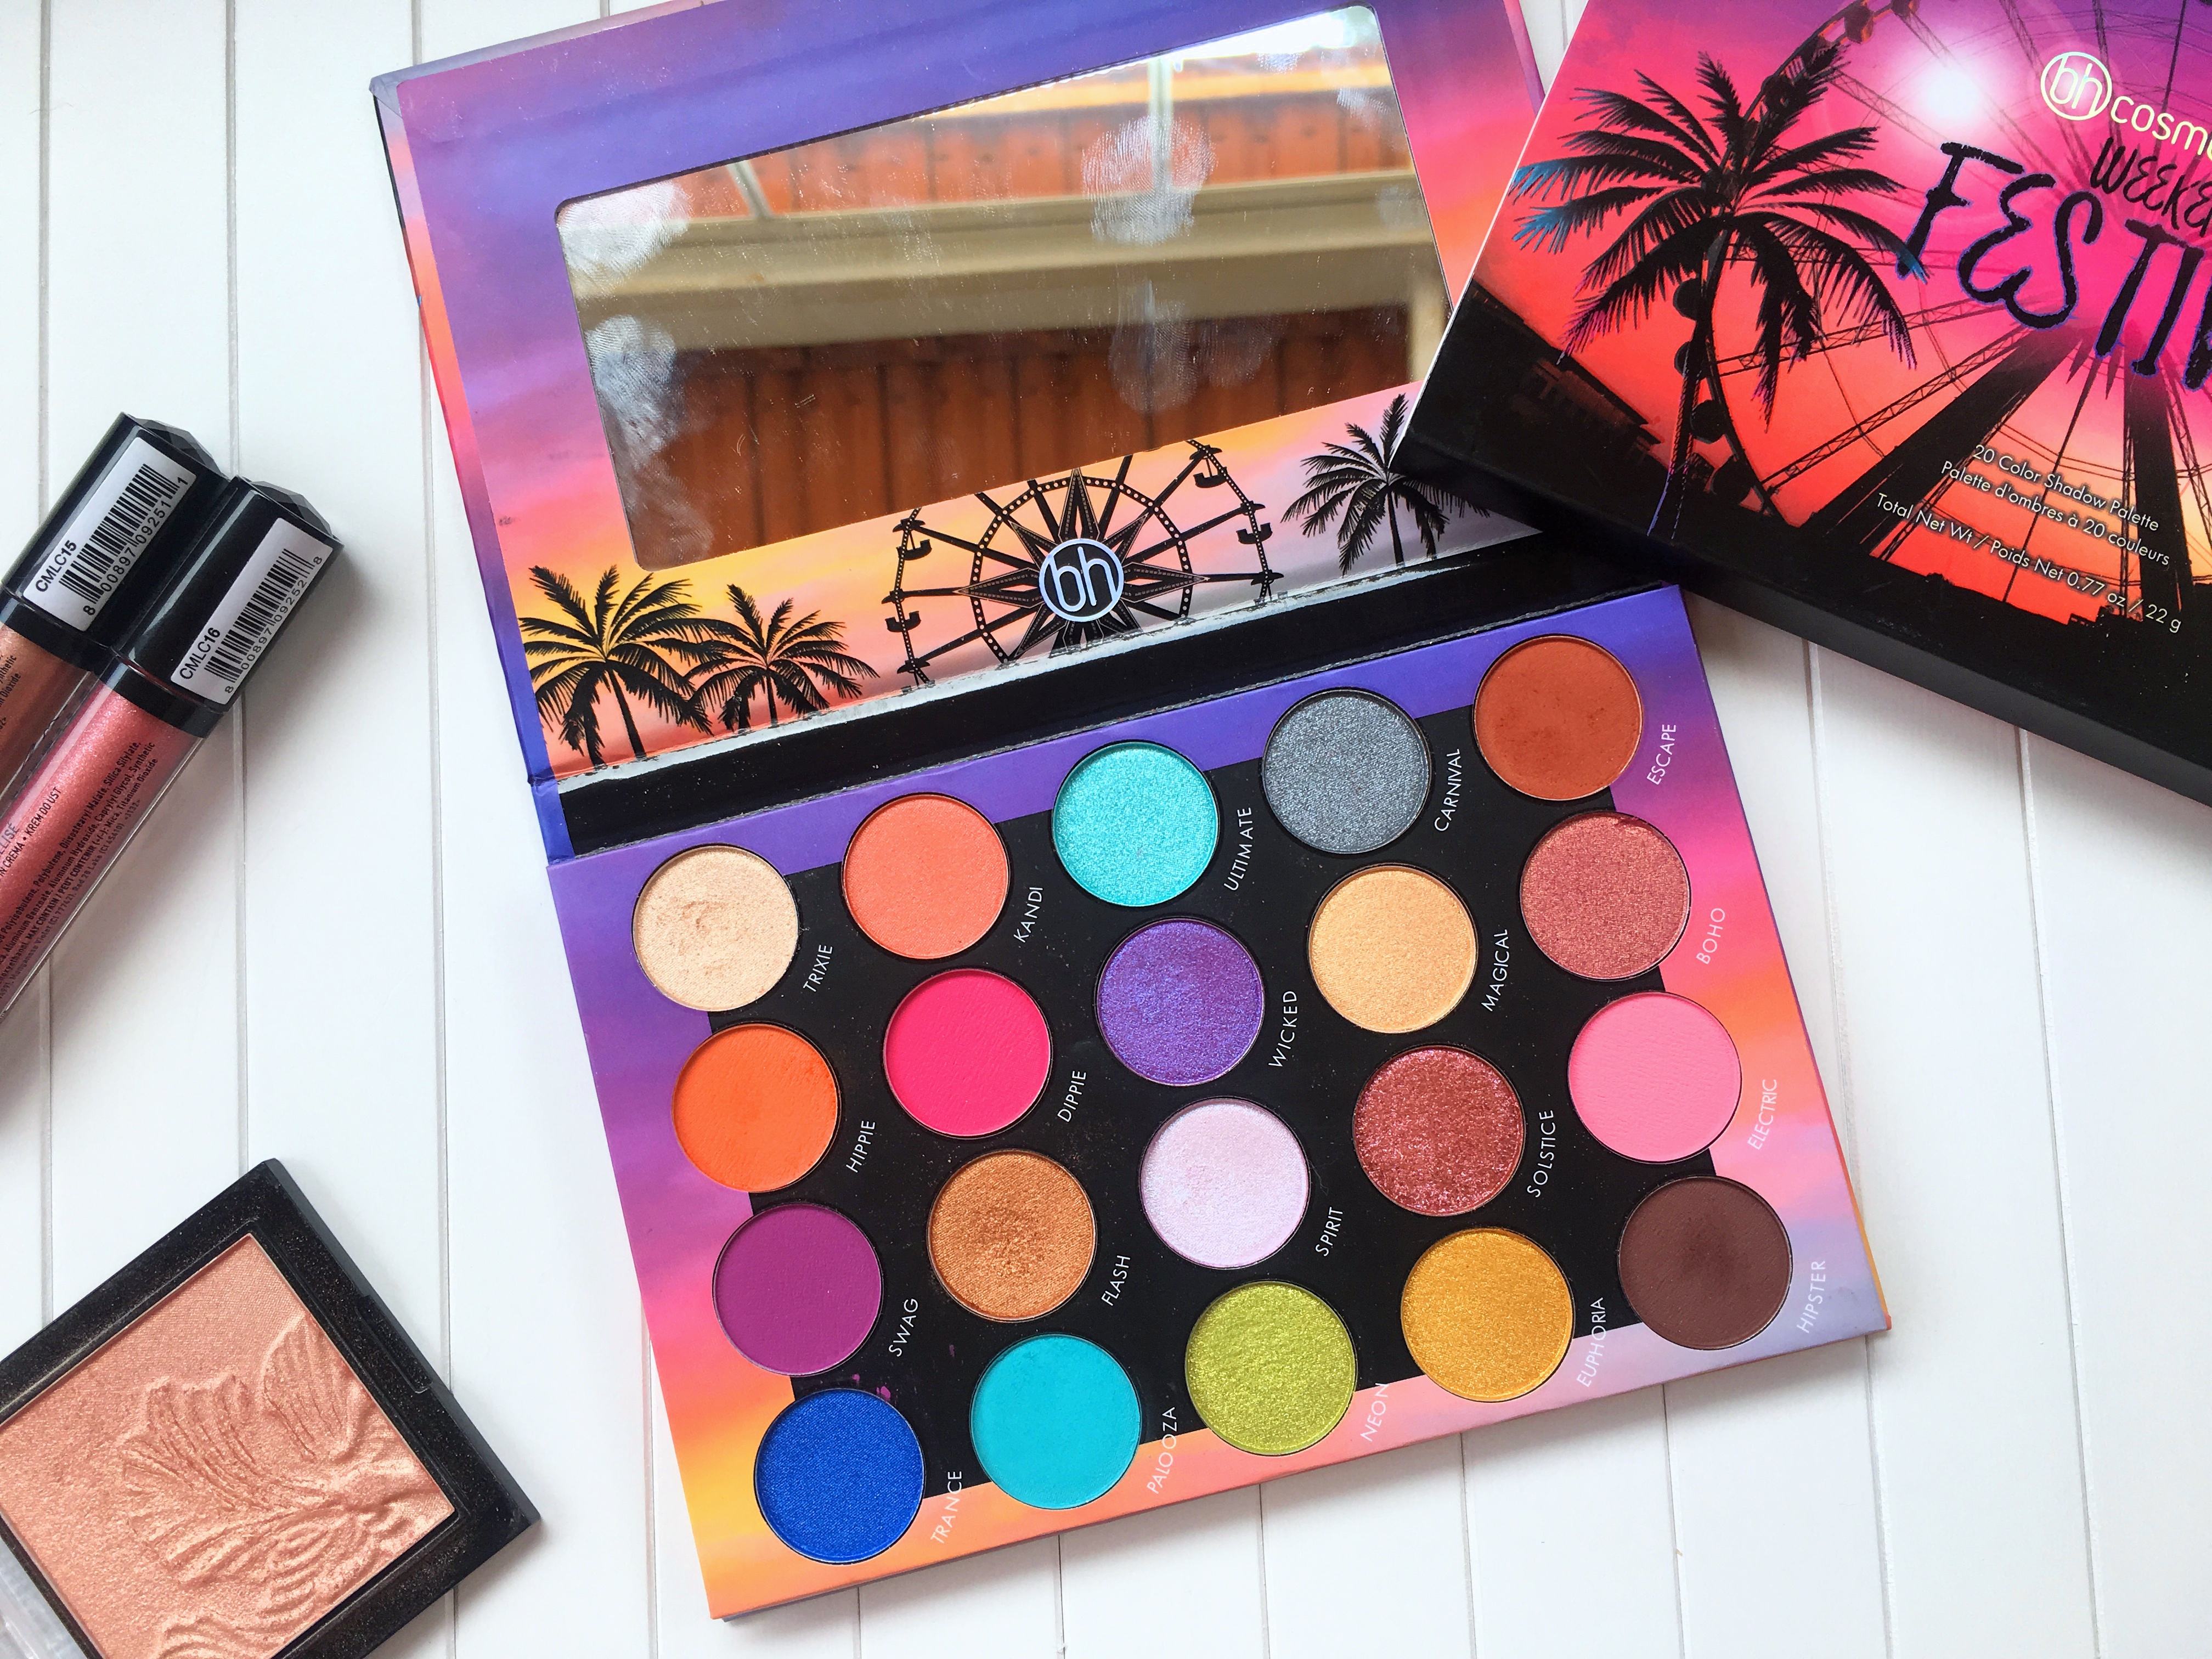 Bh Cosmetics Weekend Festival Palette By Bh Cosmetics